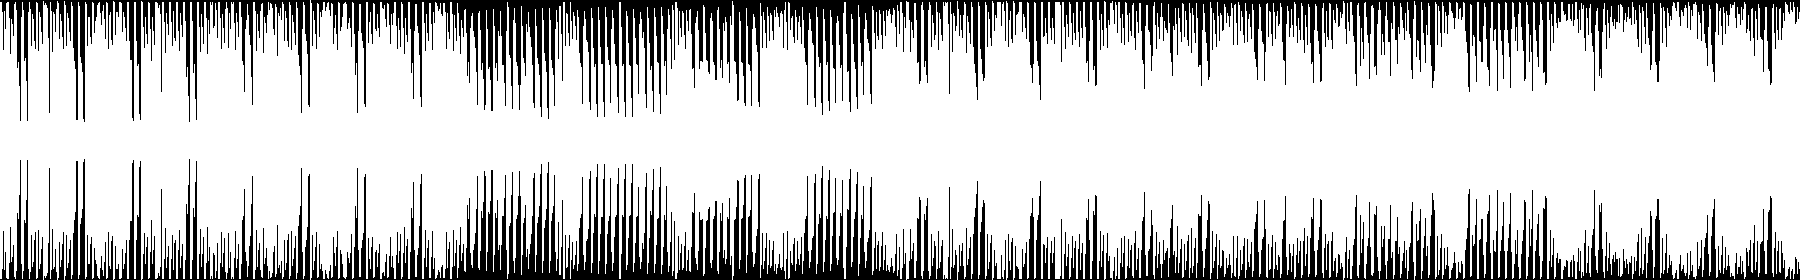 Tech House Beats & Melodies audio waveform